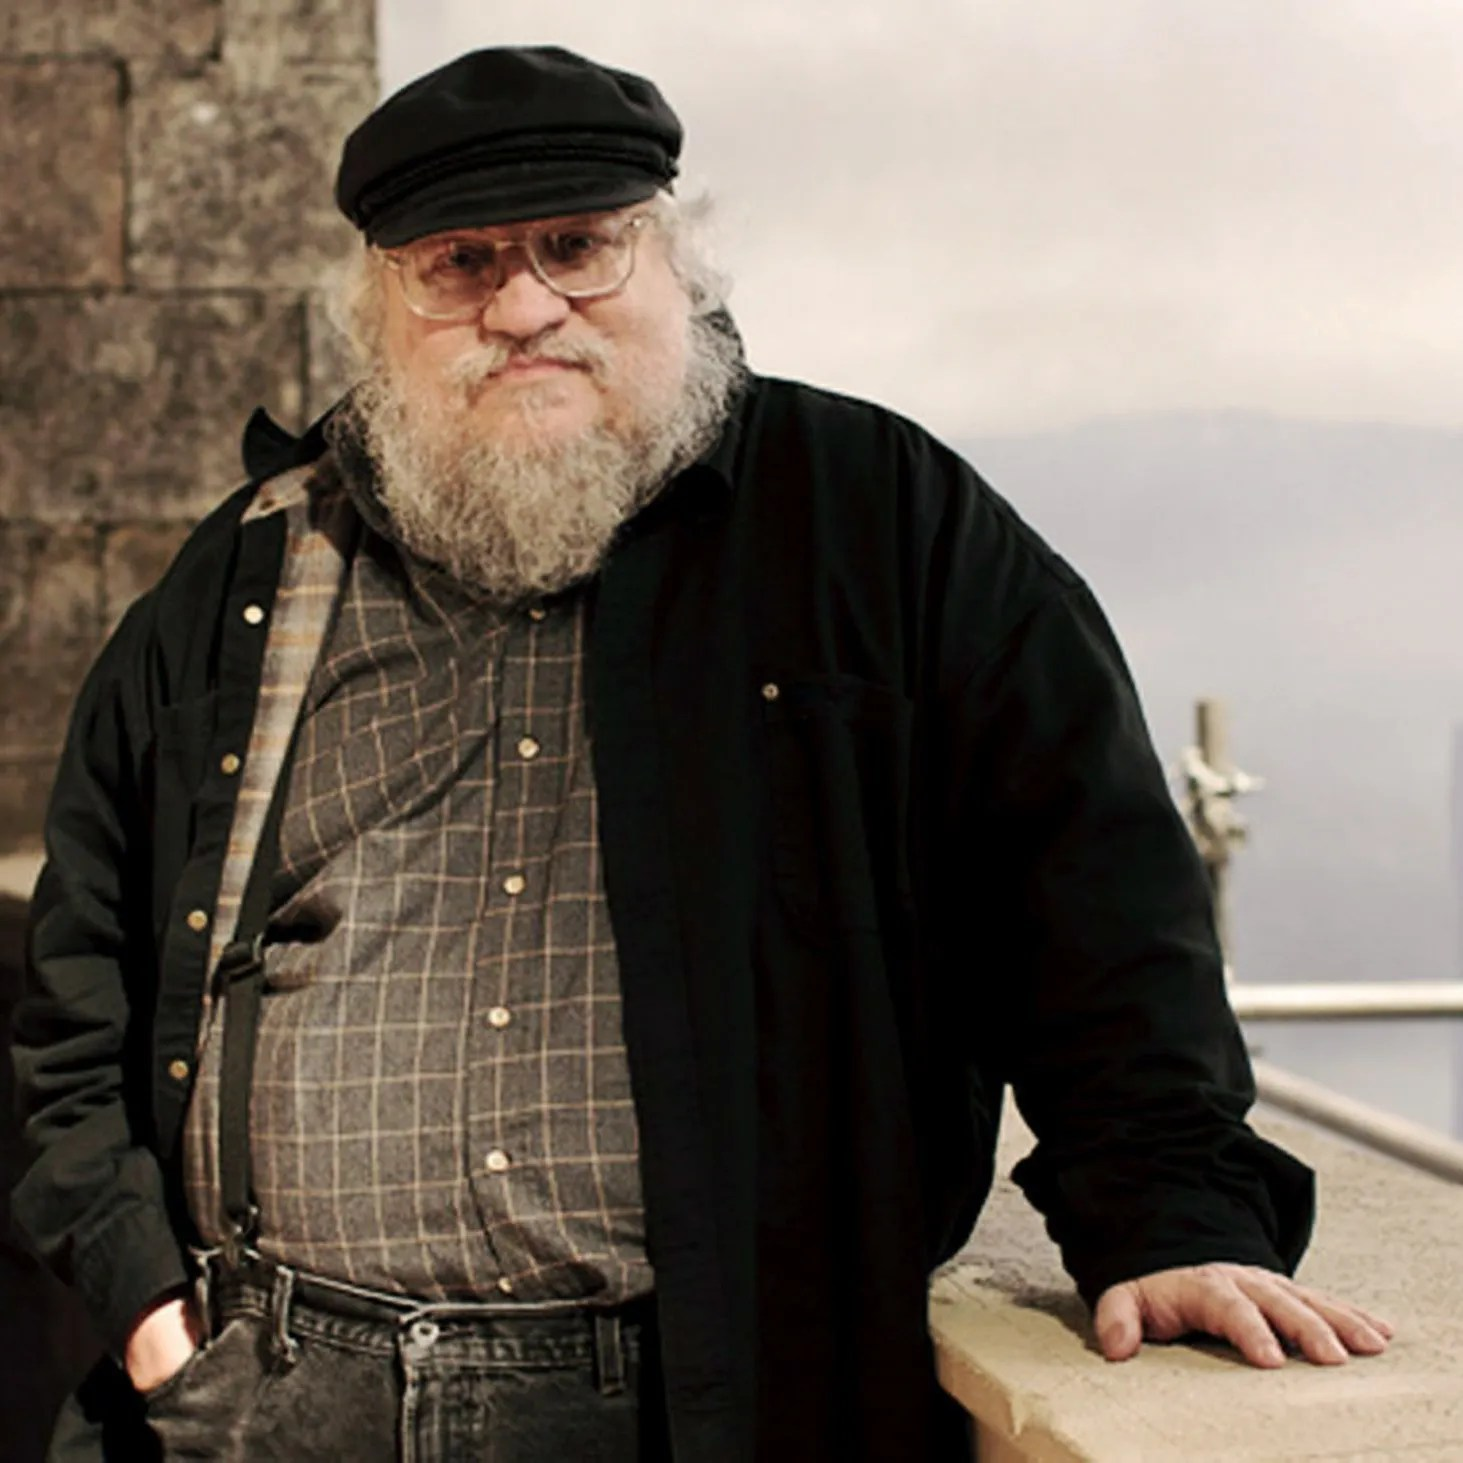 George Rr Martin Libros Game Of Thrones They Coming At John Boyega 39s Neck For Saying Game Of